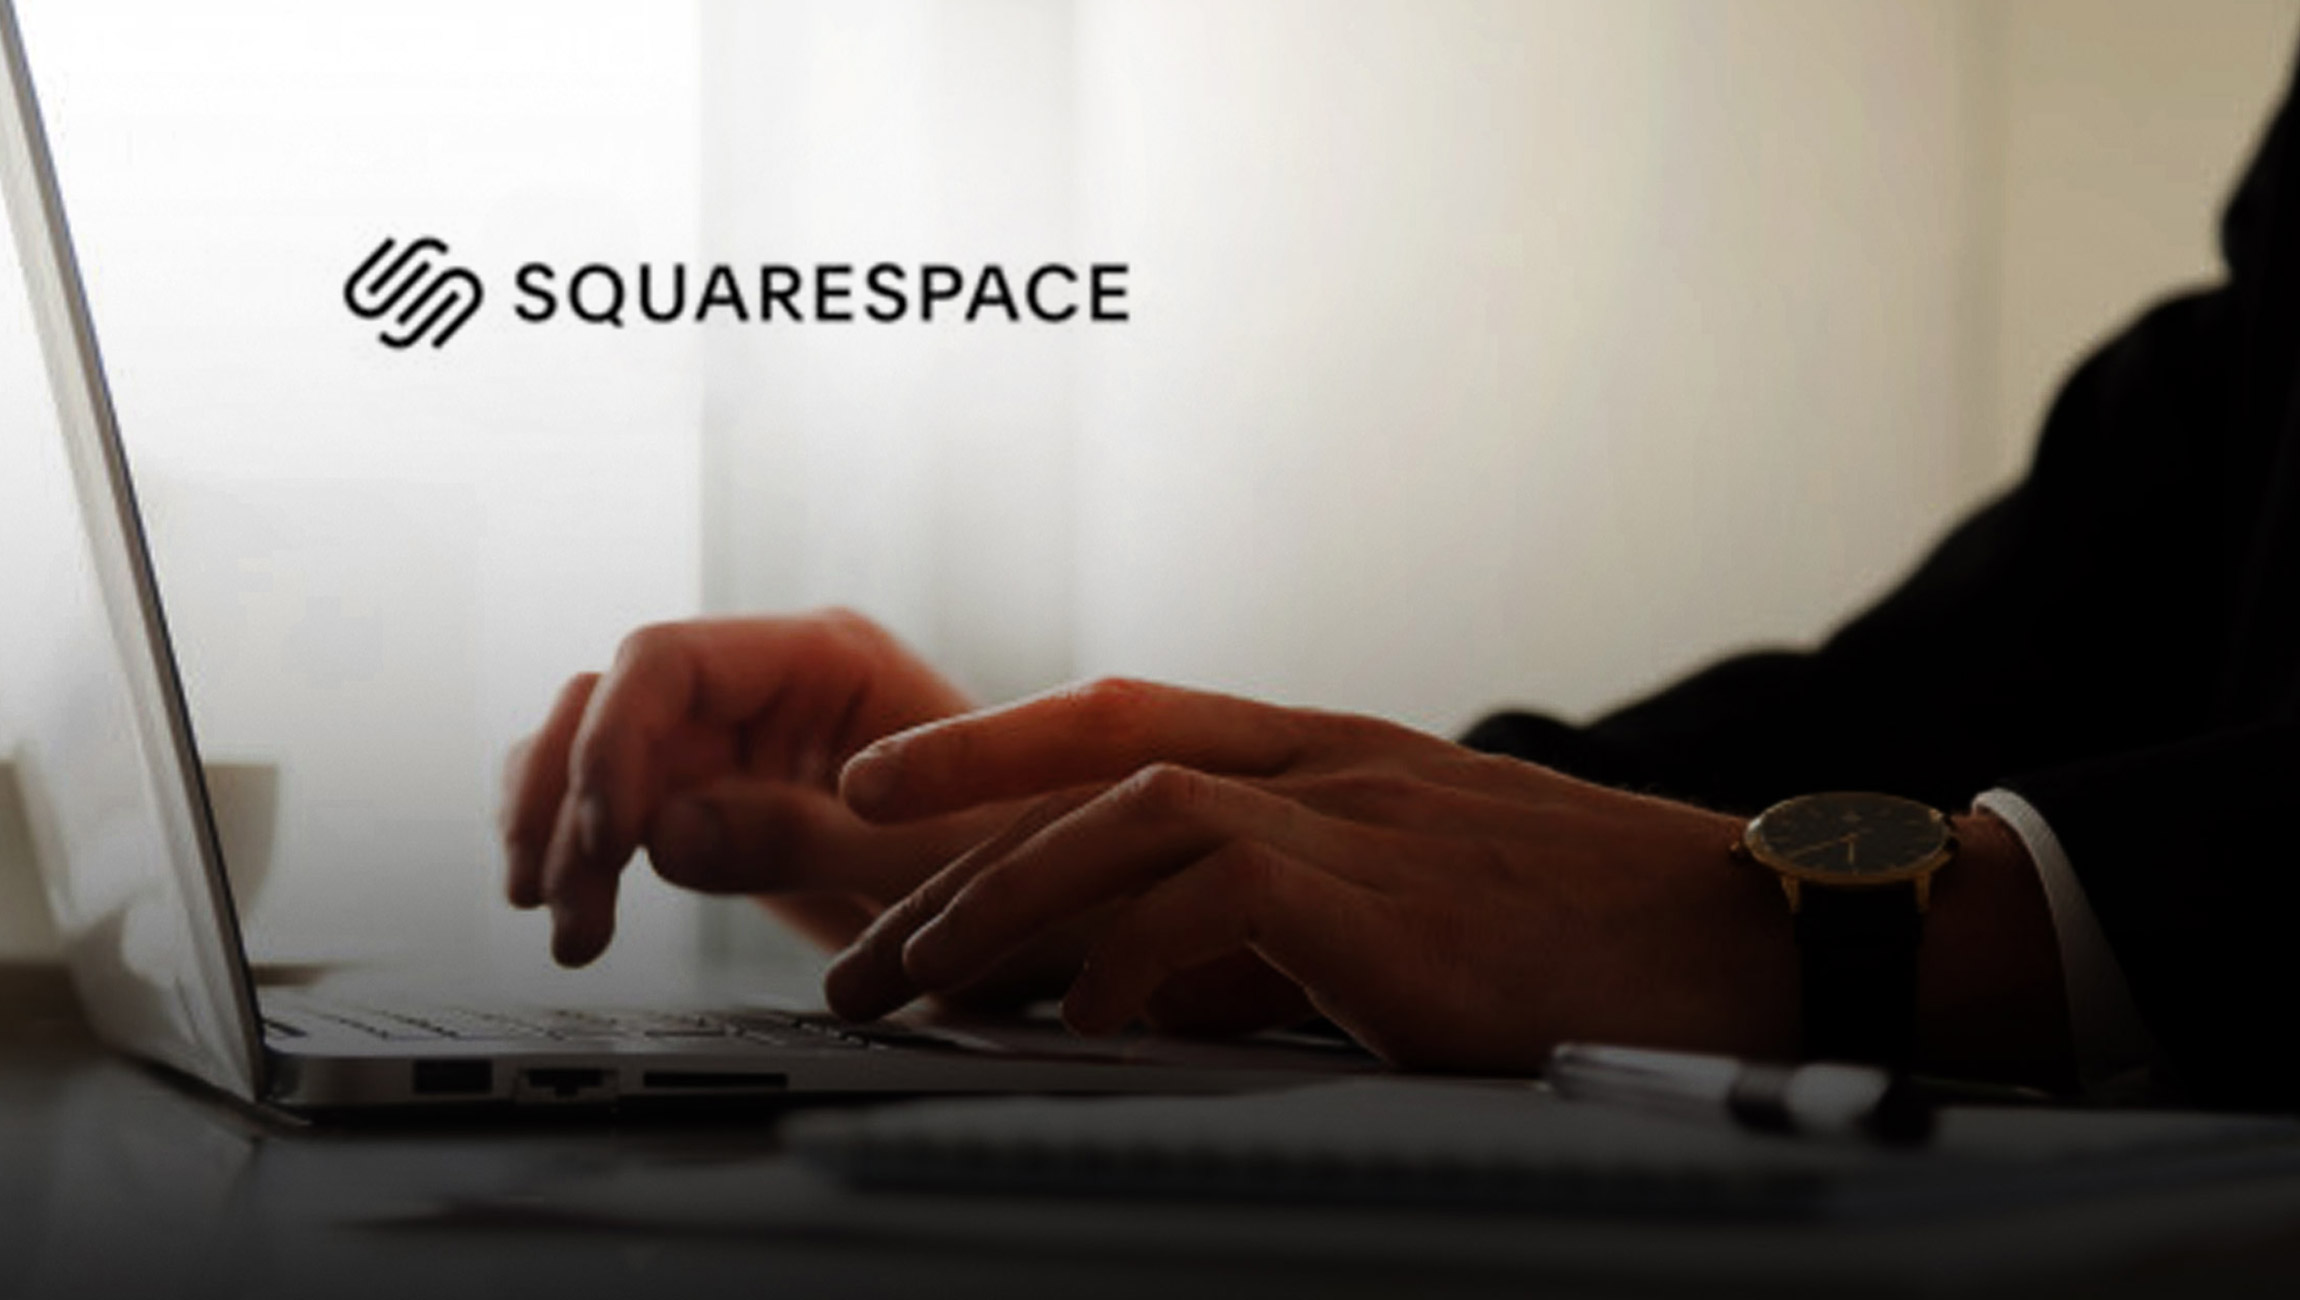 Everything to Sell Anything: Squarespace Introduces New Platform Vision with Cross Platform Upgrades and Product Releases